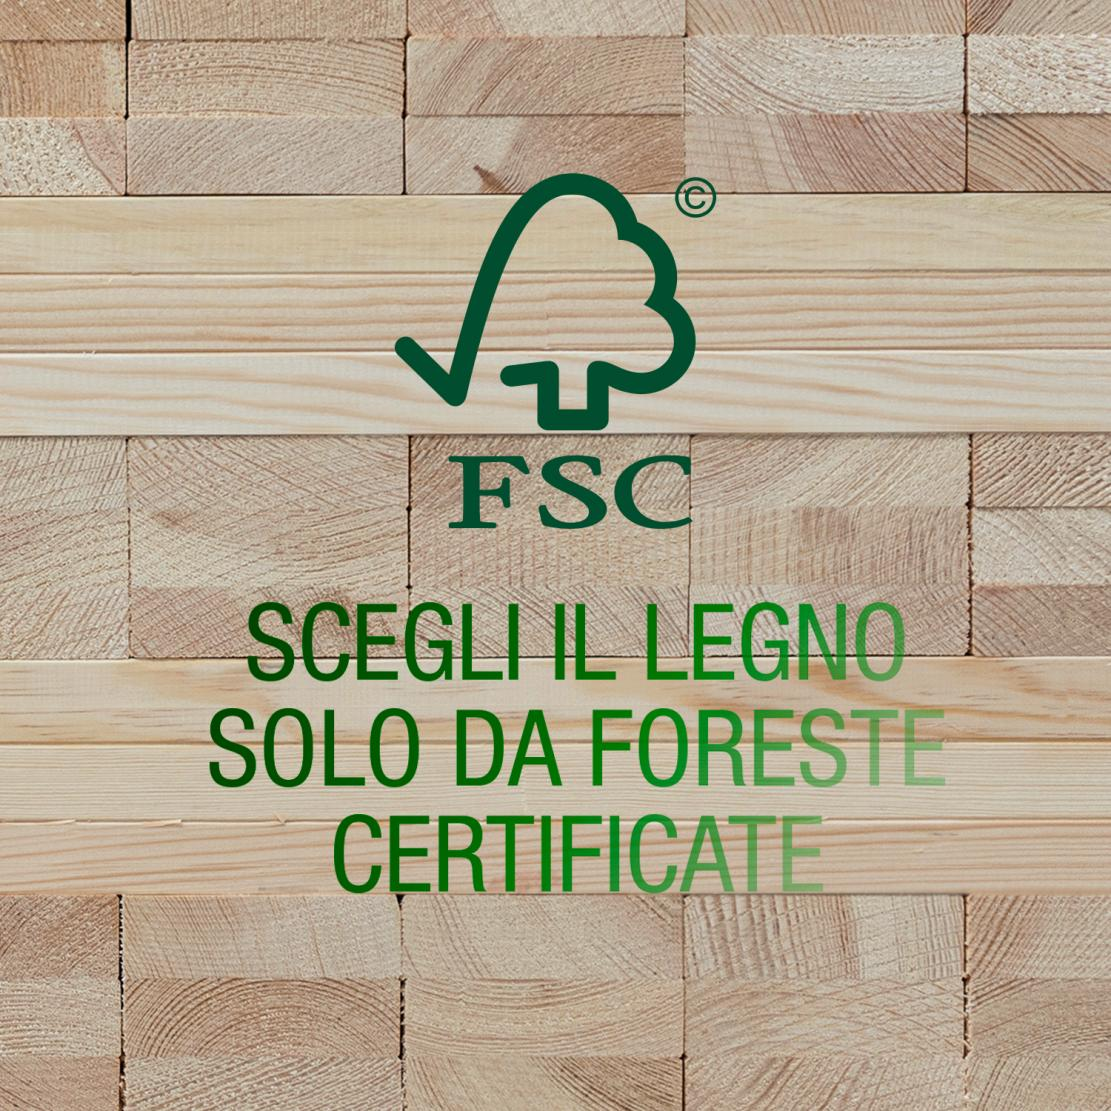 Timber windows from FSC certified forests